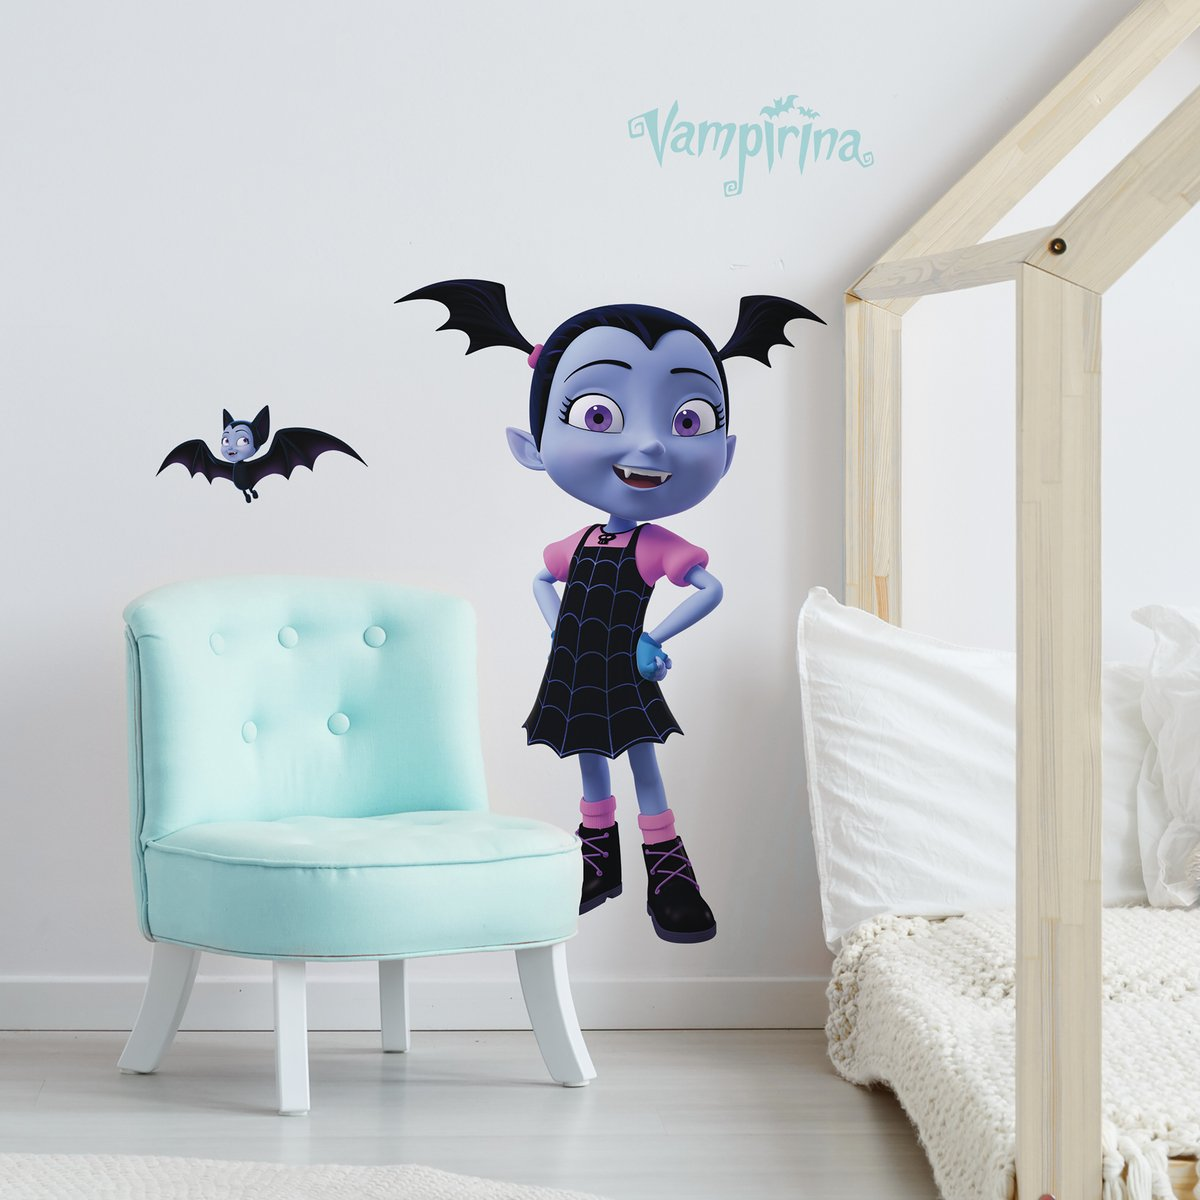 Vinilo Decorativo Pared [7BCRWFPG] vampirina disney